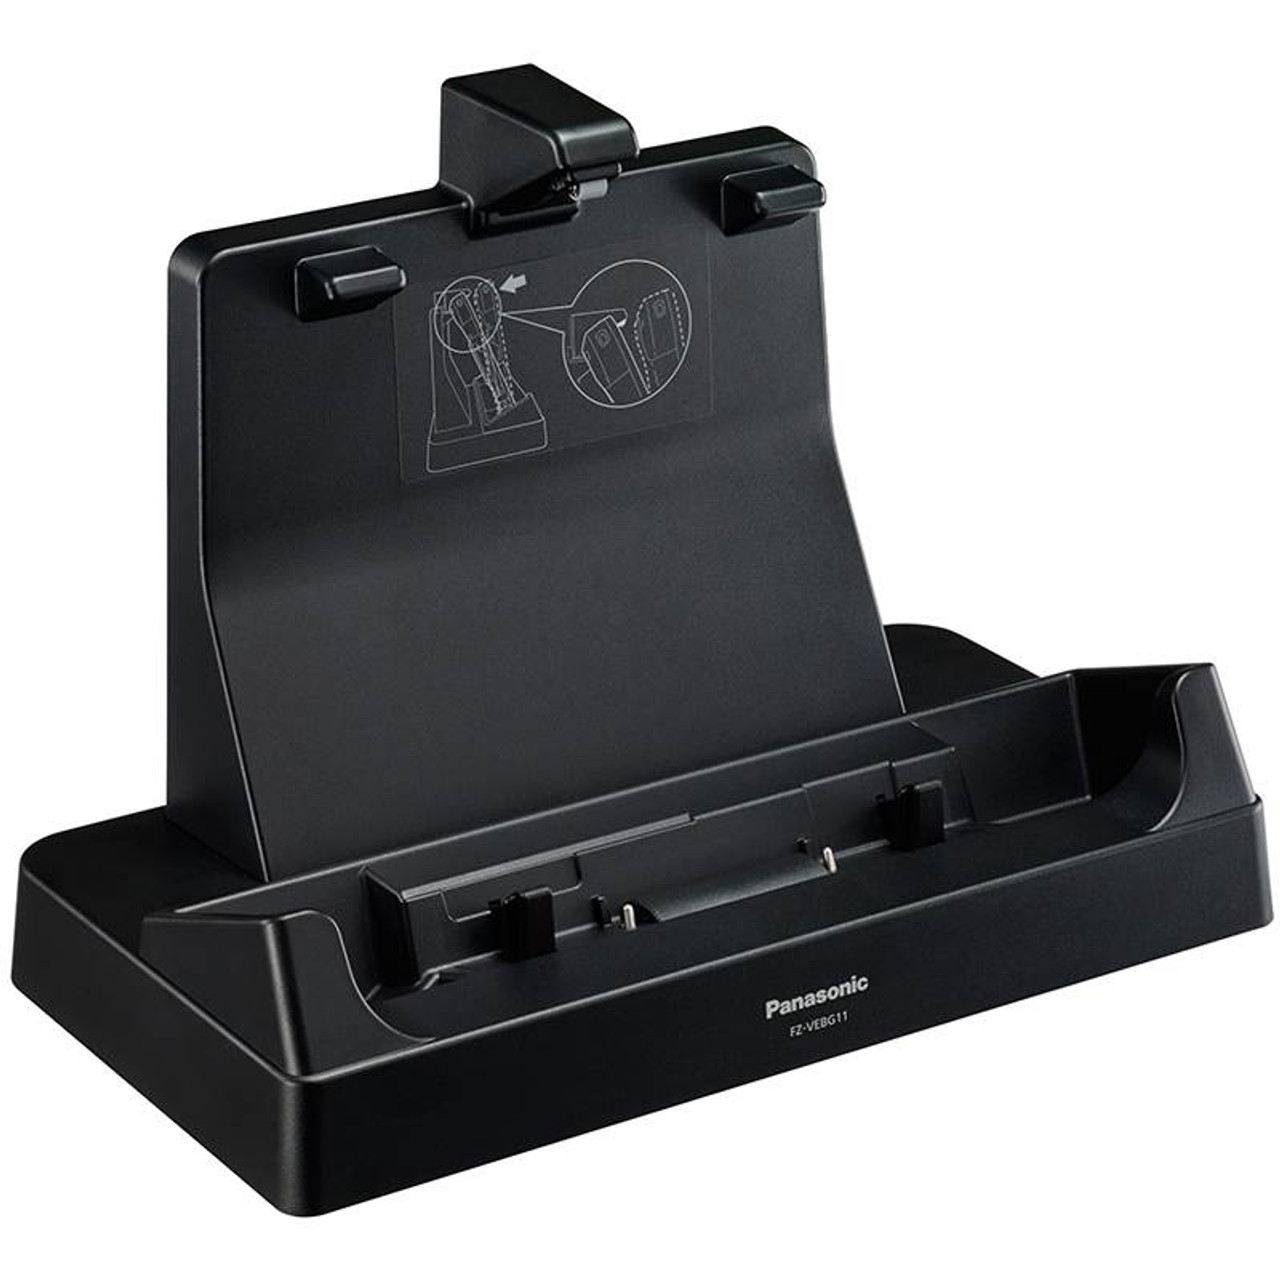 Image for Panasonic Docking Station for FZ-G1 (Dual Output) CX Computer Superstore